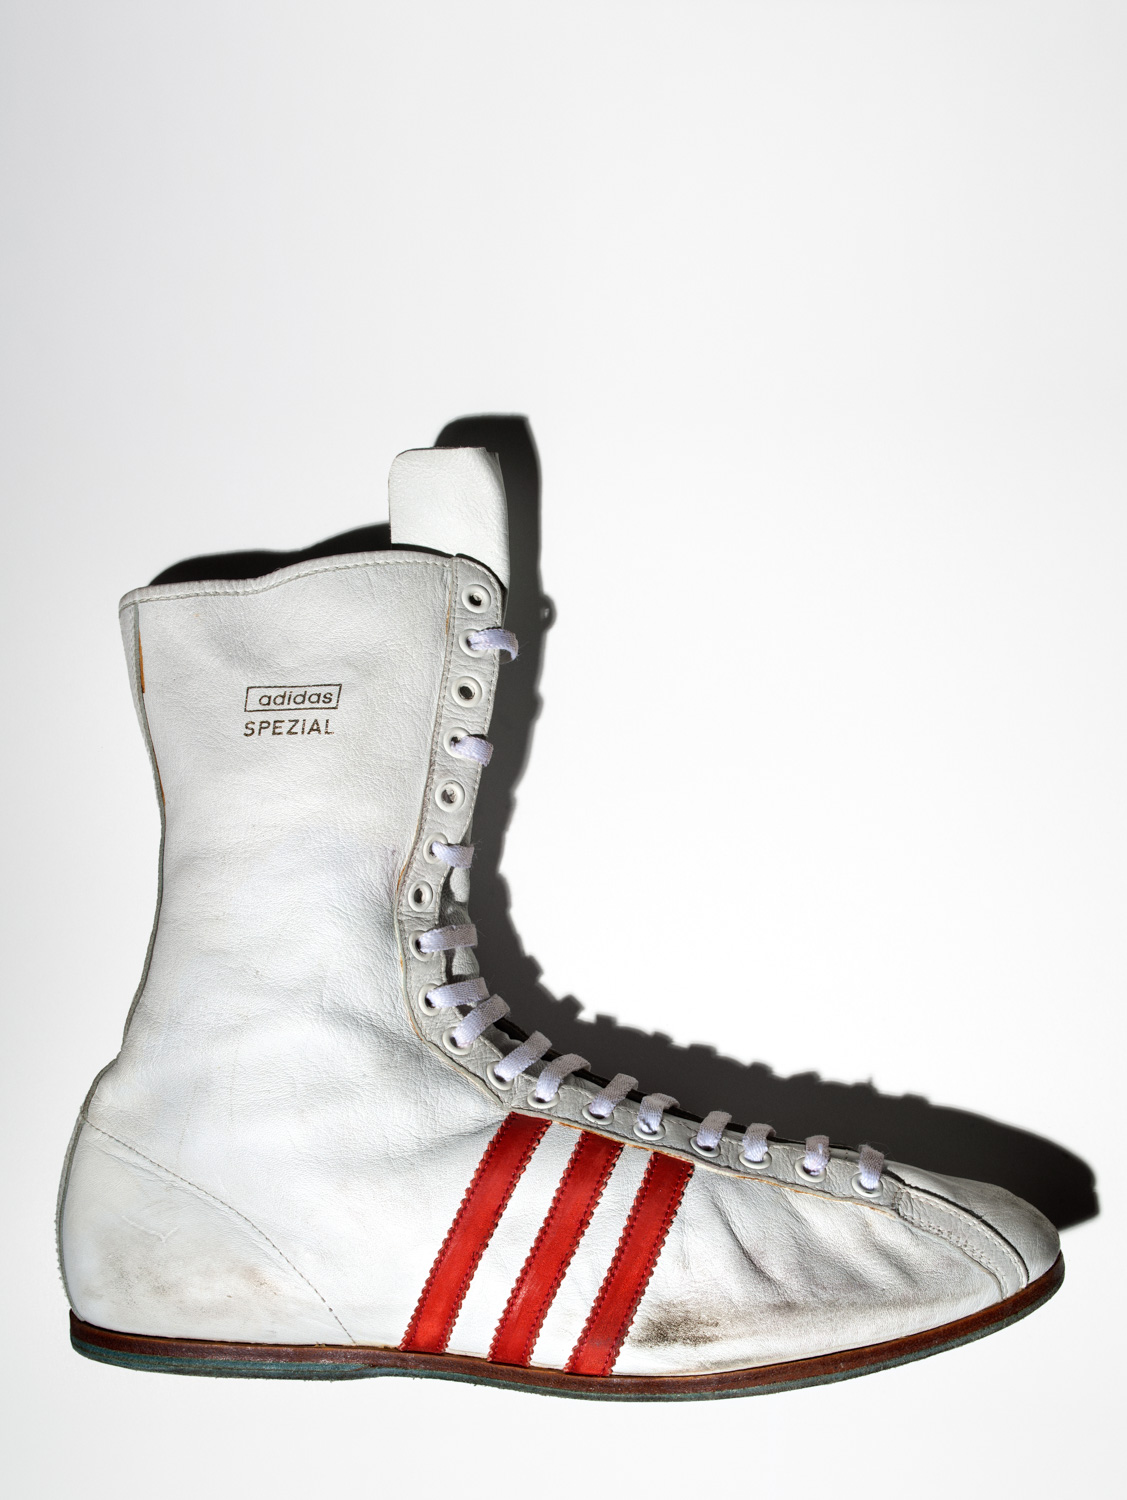 American boxer Muhammad Ali's Adidas  Special  boxing shoe, size 13 US.